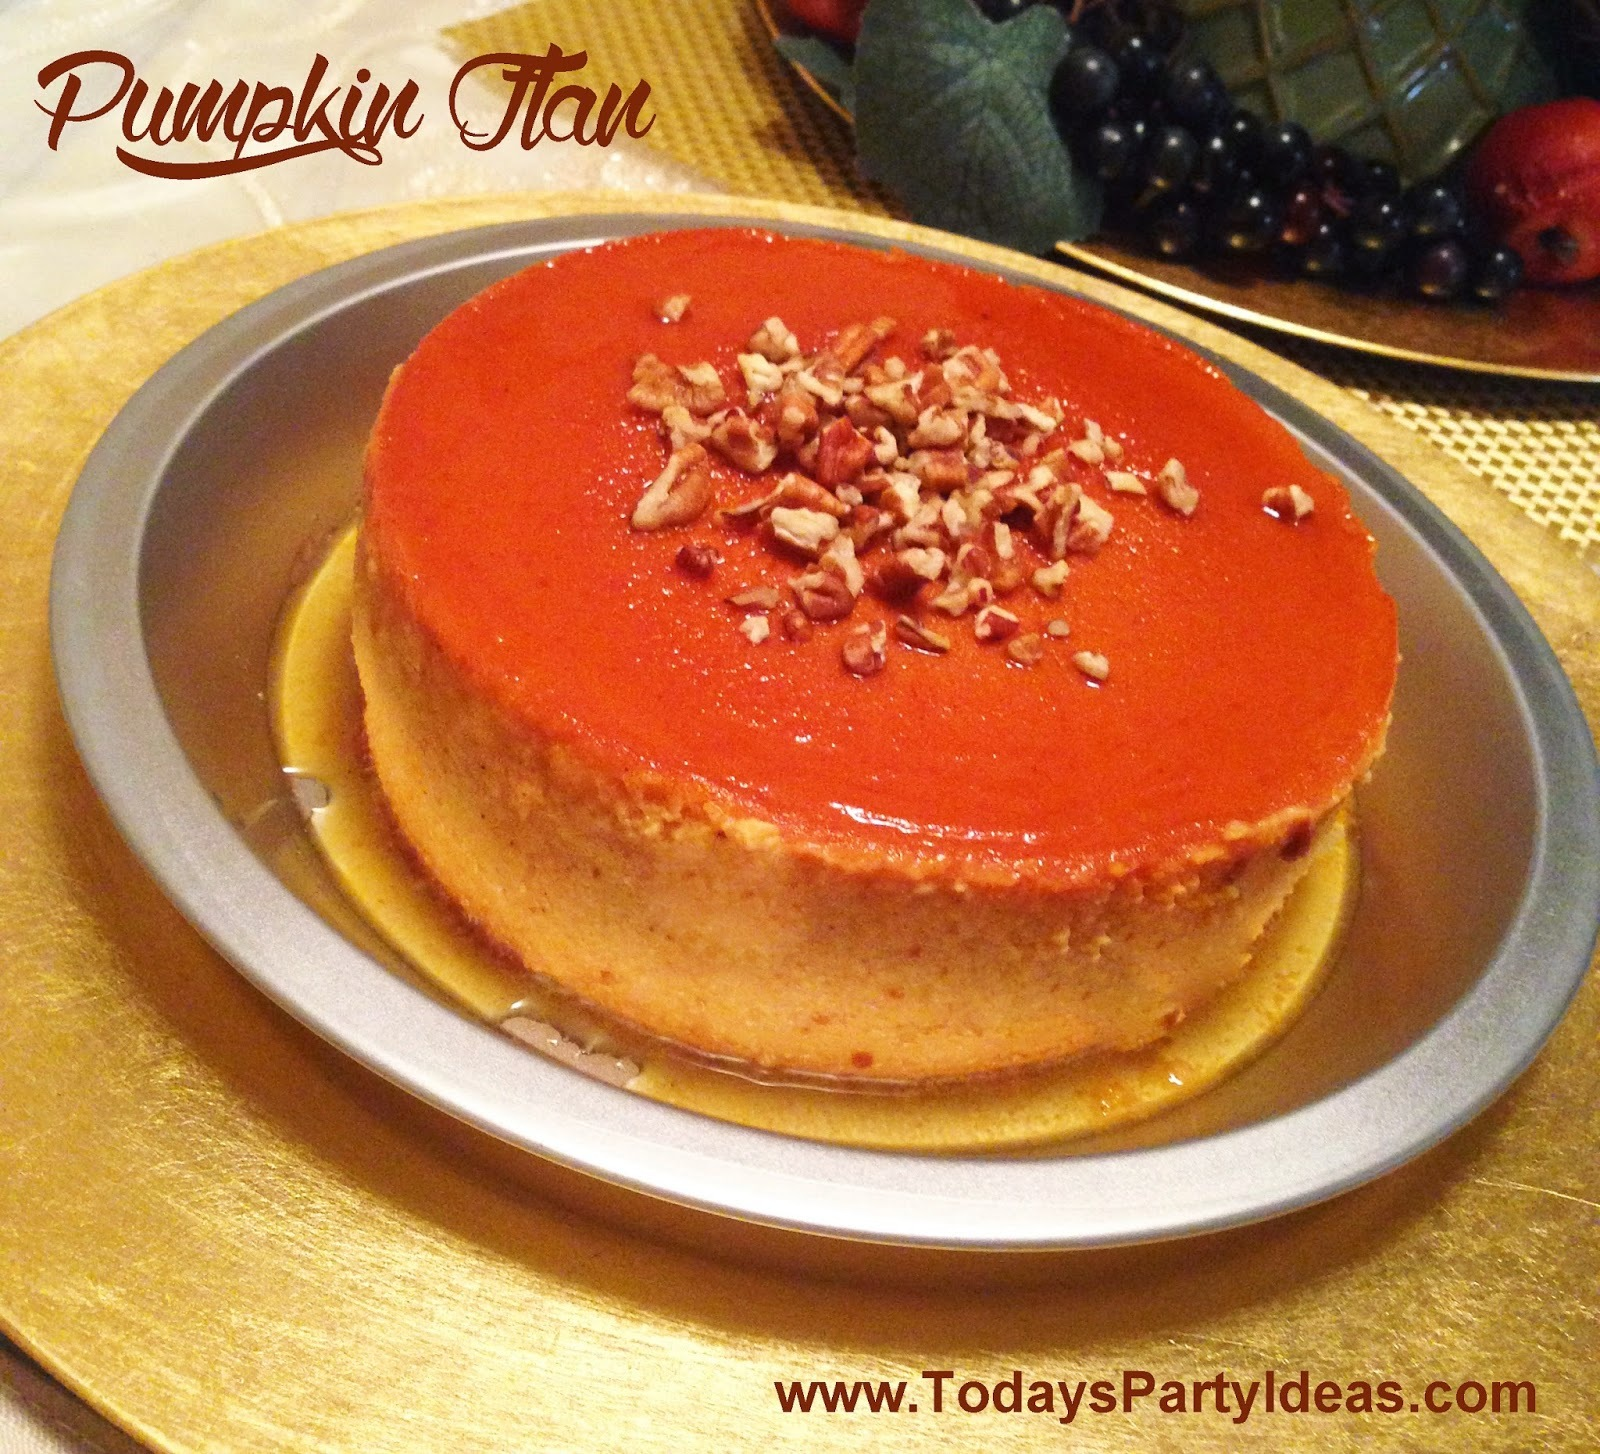 {Sweet Recipes} Pumpkin Flan (Flan de Calabaza)